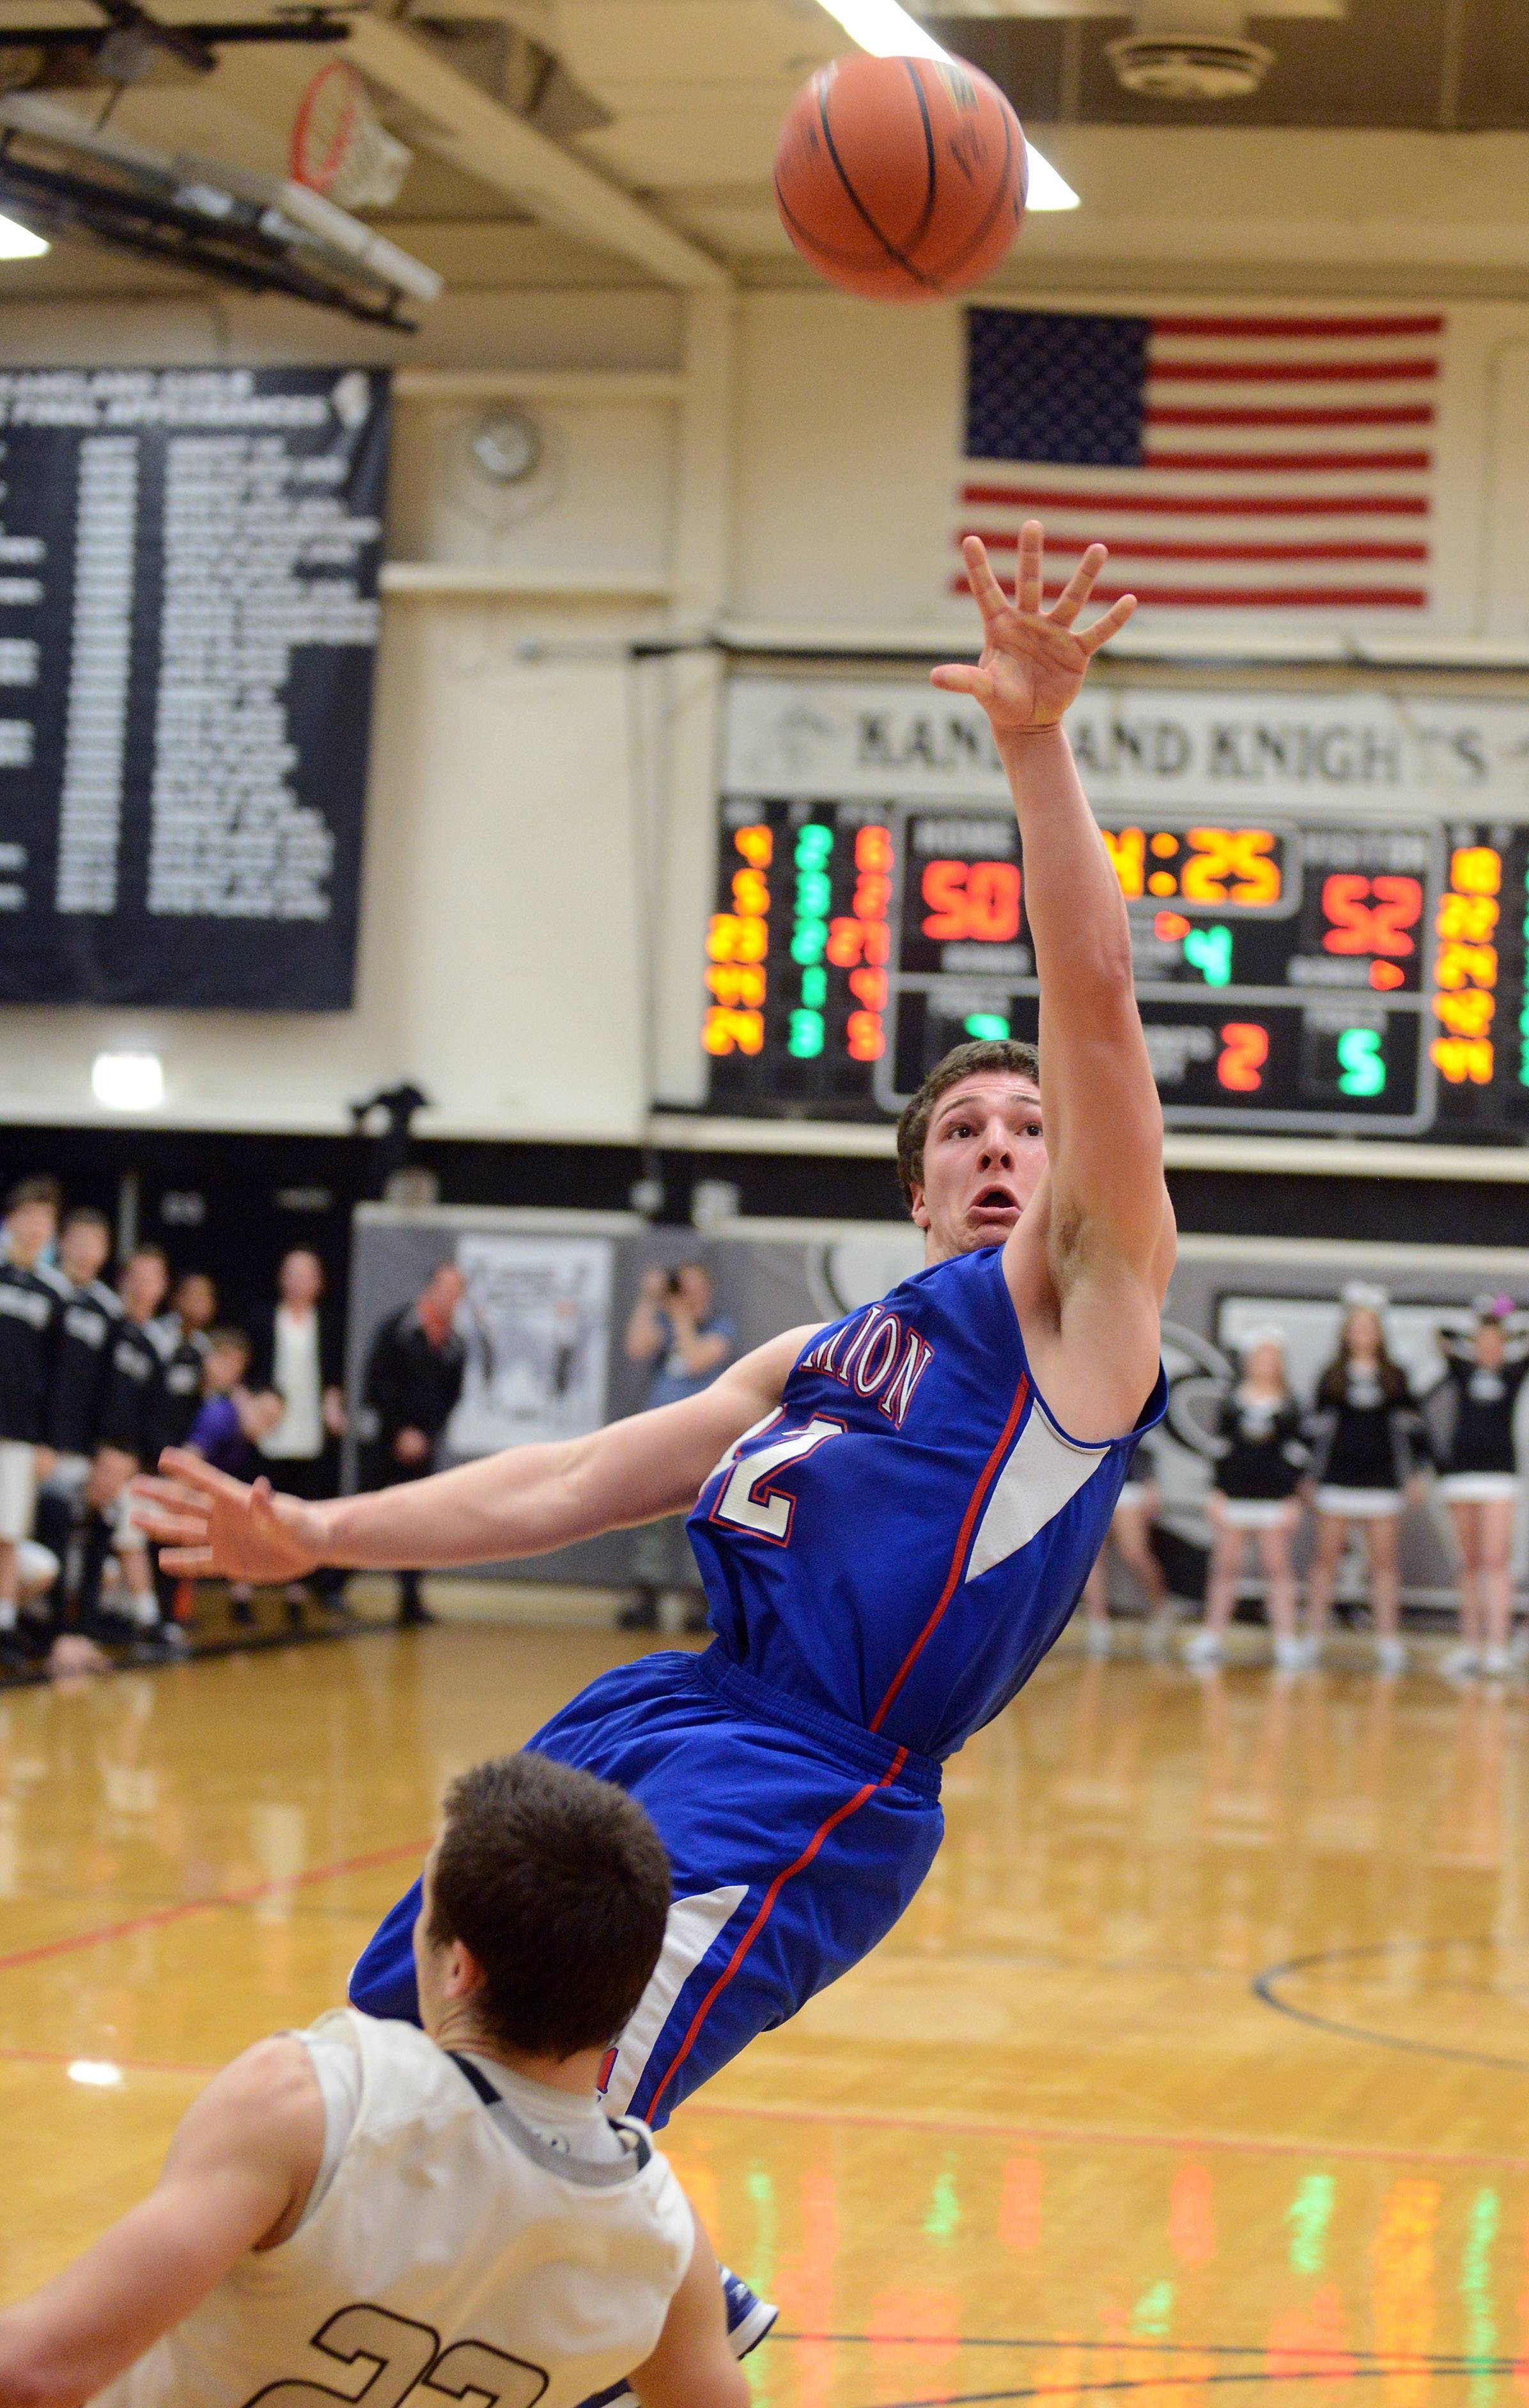 Marmion's Jordan Glasgow gets off an off-balance shot as he is fouled by Kaneland's Owen Korpela.